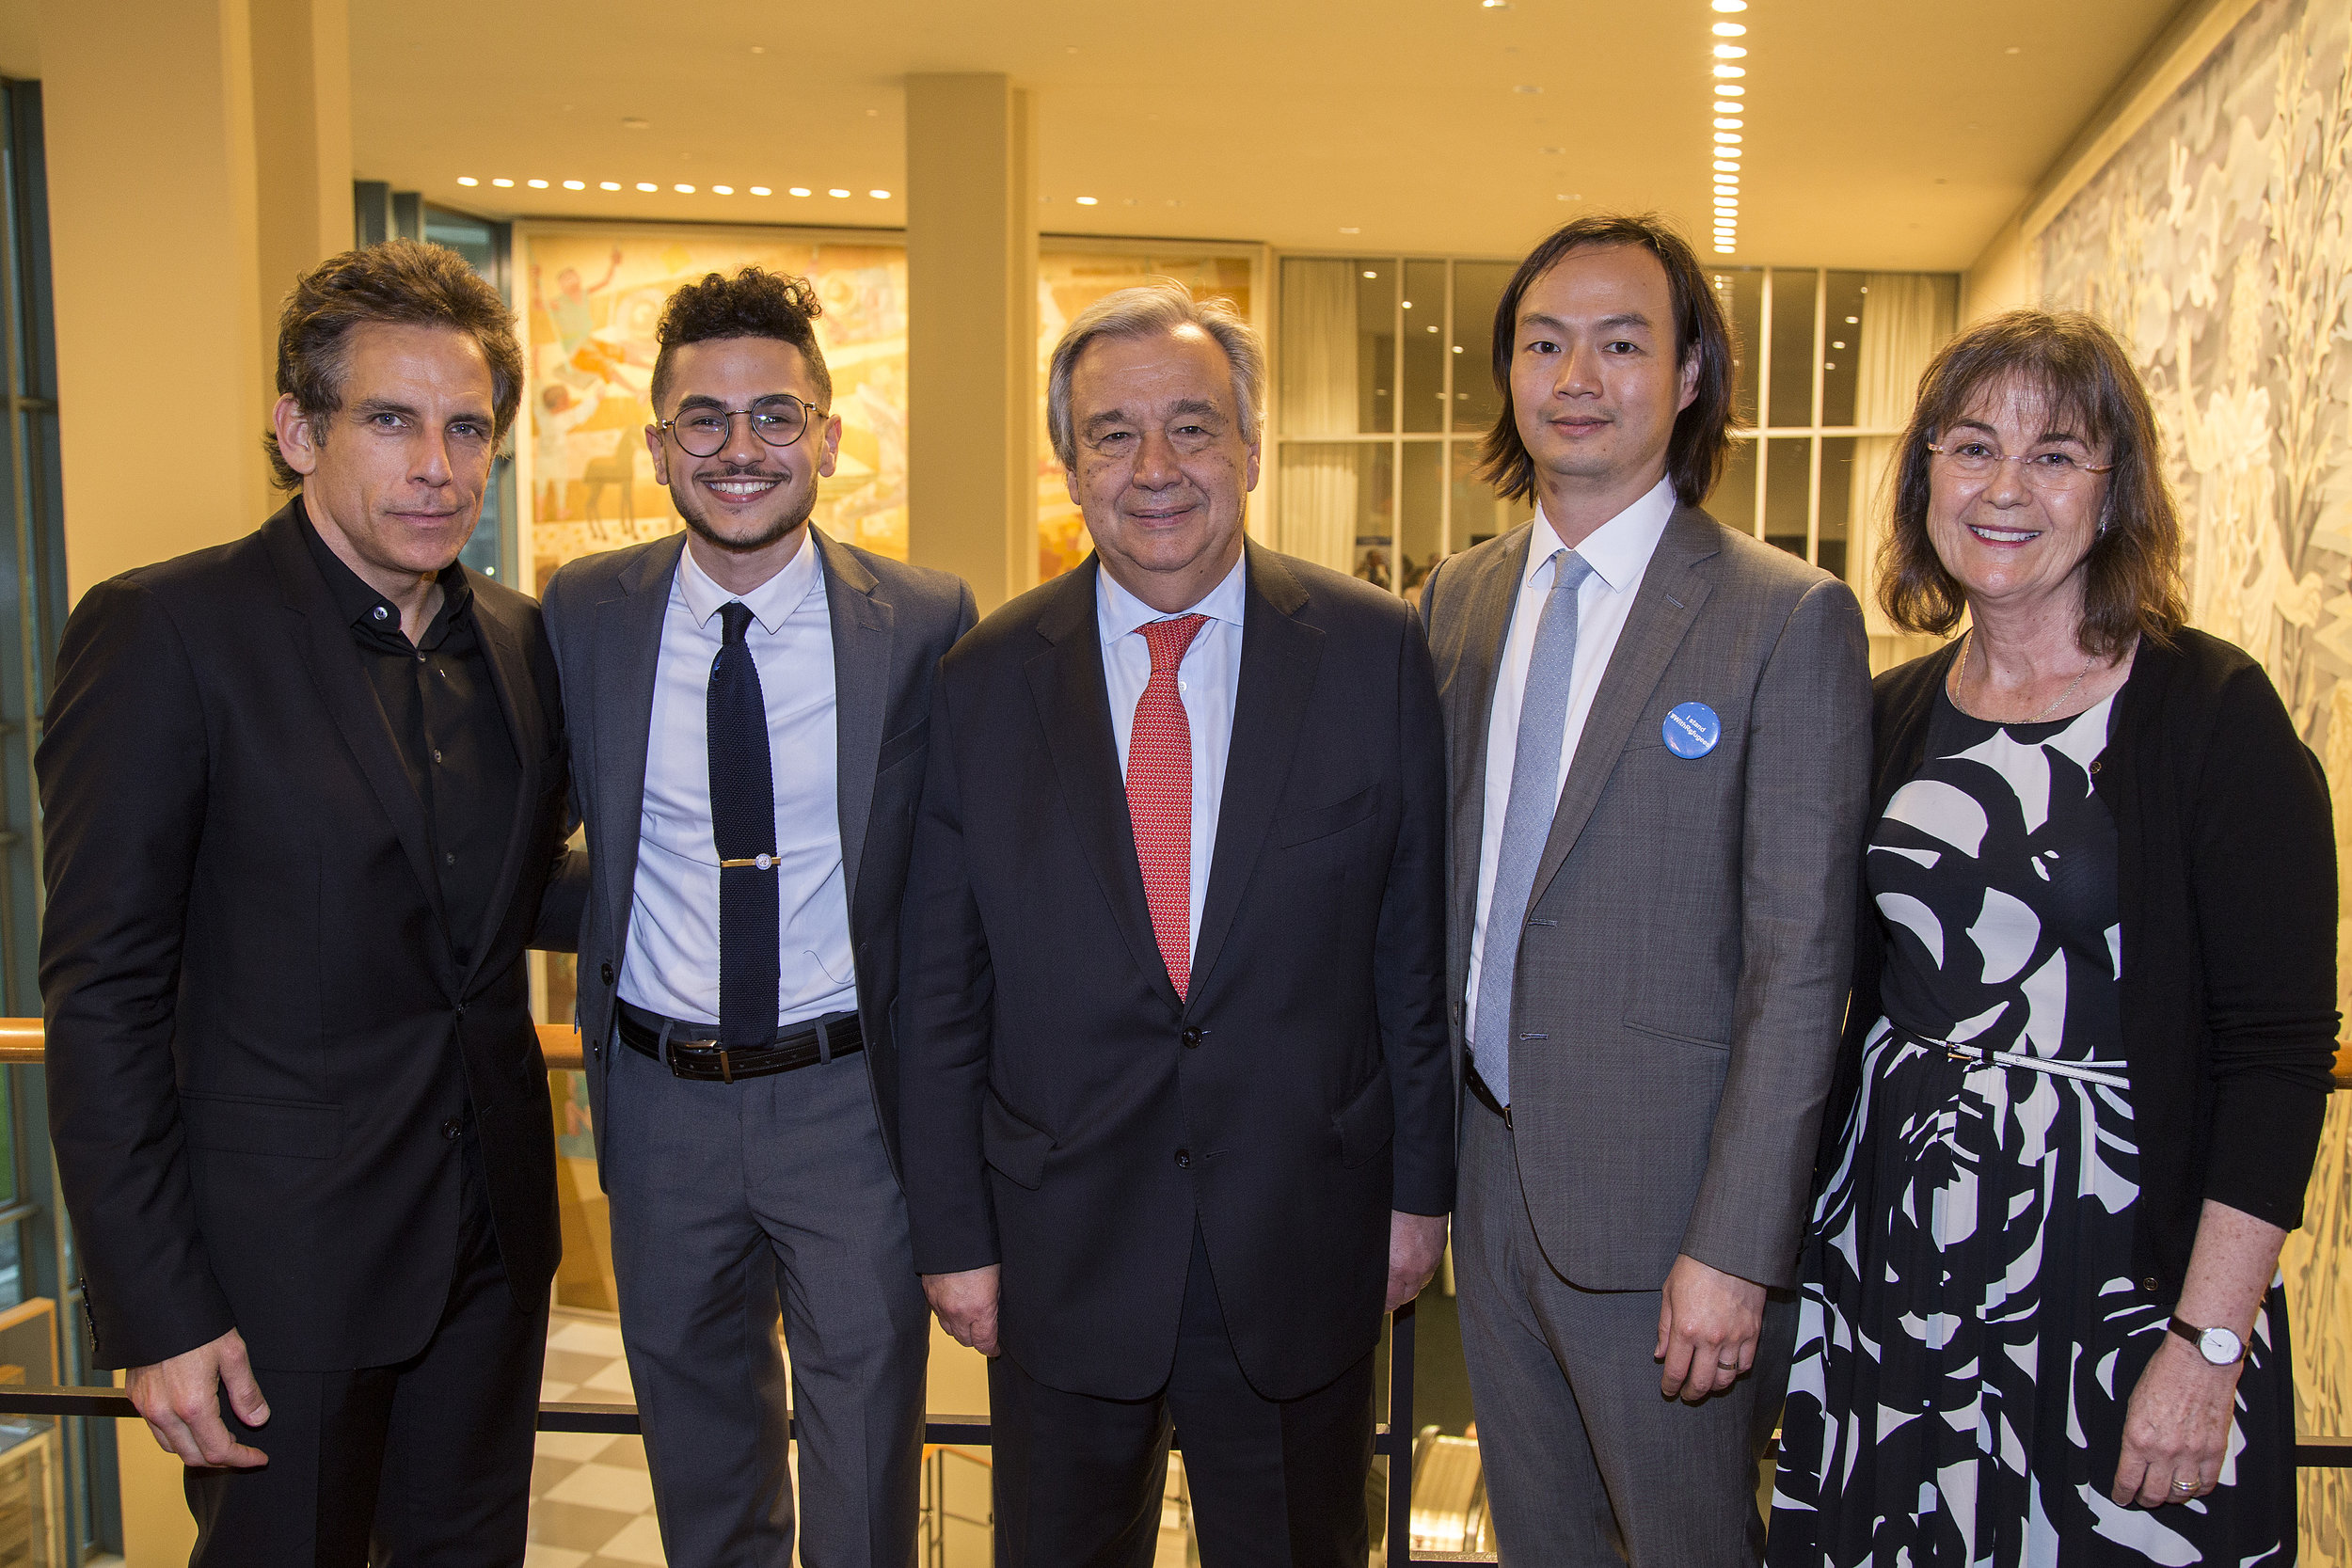 """For World Refugee Day 2017, Ahmed read his poem,  """"A Thank You Letter From the Bomb that visited My Home""""  at a private United Nations reception. From left to right: Ben Stiller, Ahmed, UN Secretary General Antonio Guterres, Christopher Tin, and UNHCR NY Director Ninette Kelly. (Scott Nelson)"""